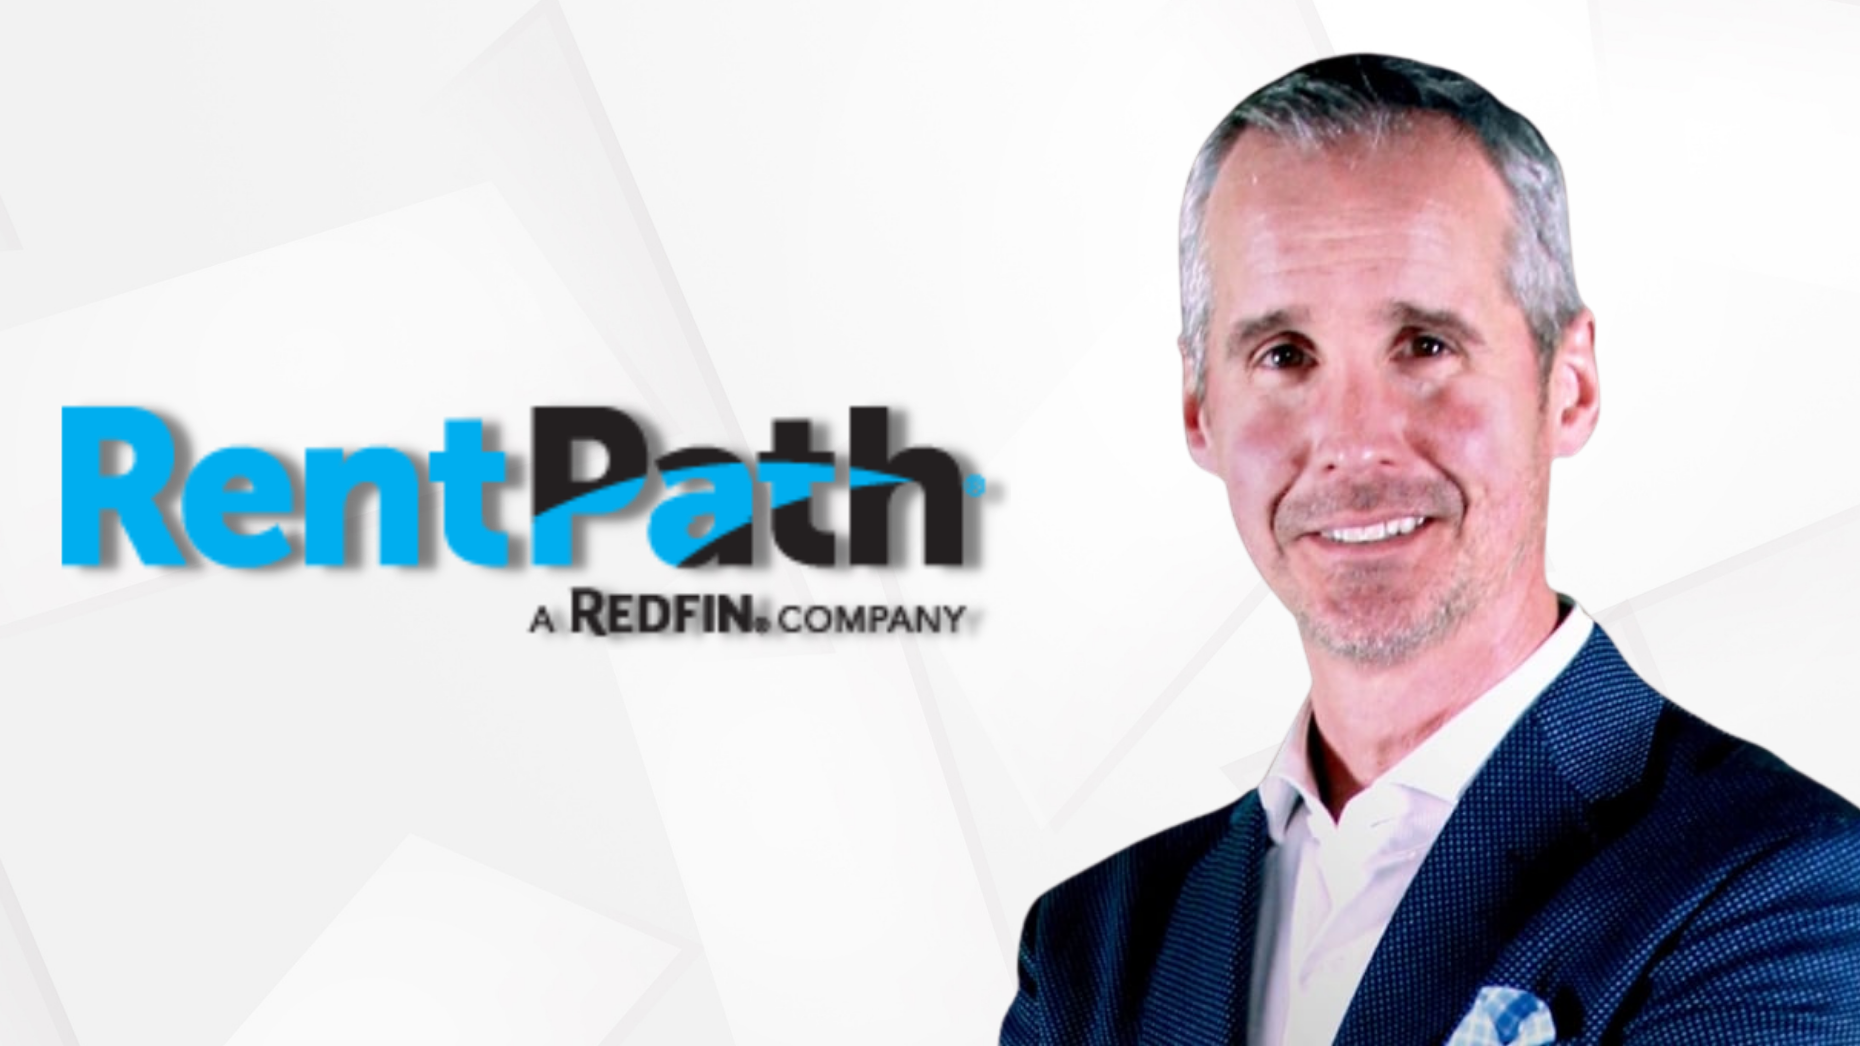 Redfin-owned RentPath names ParkMobile chief exec as new CEO